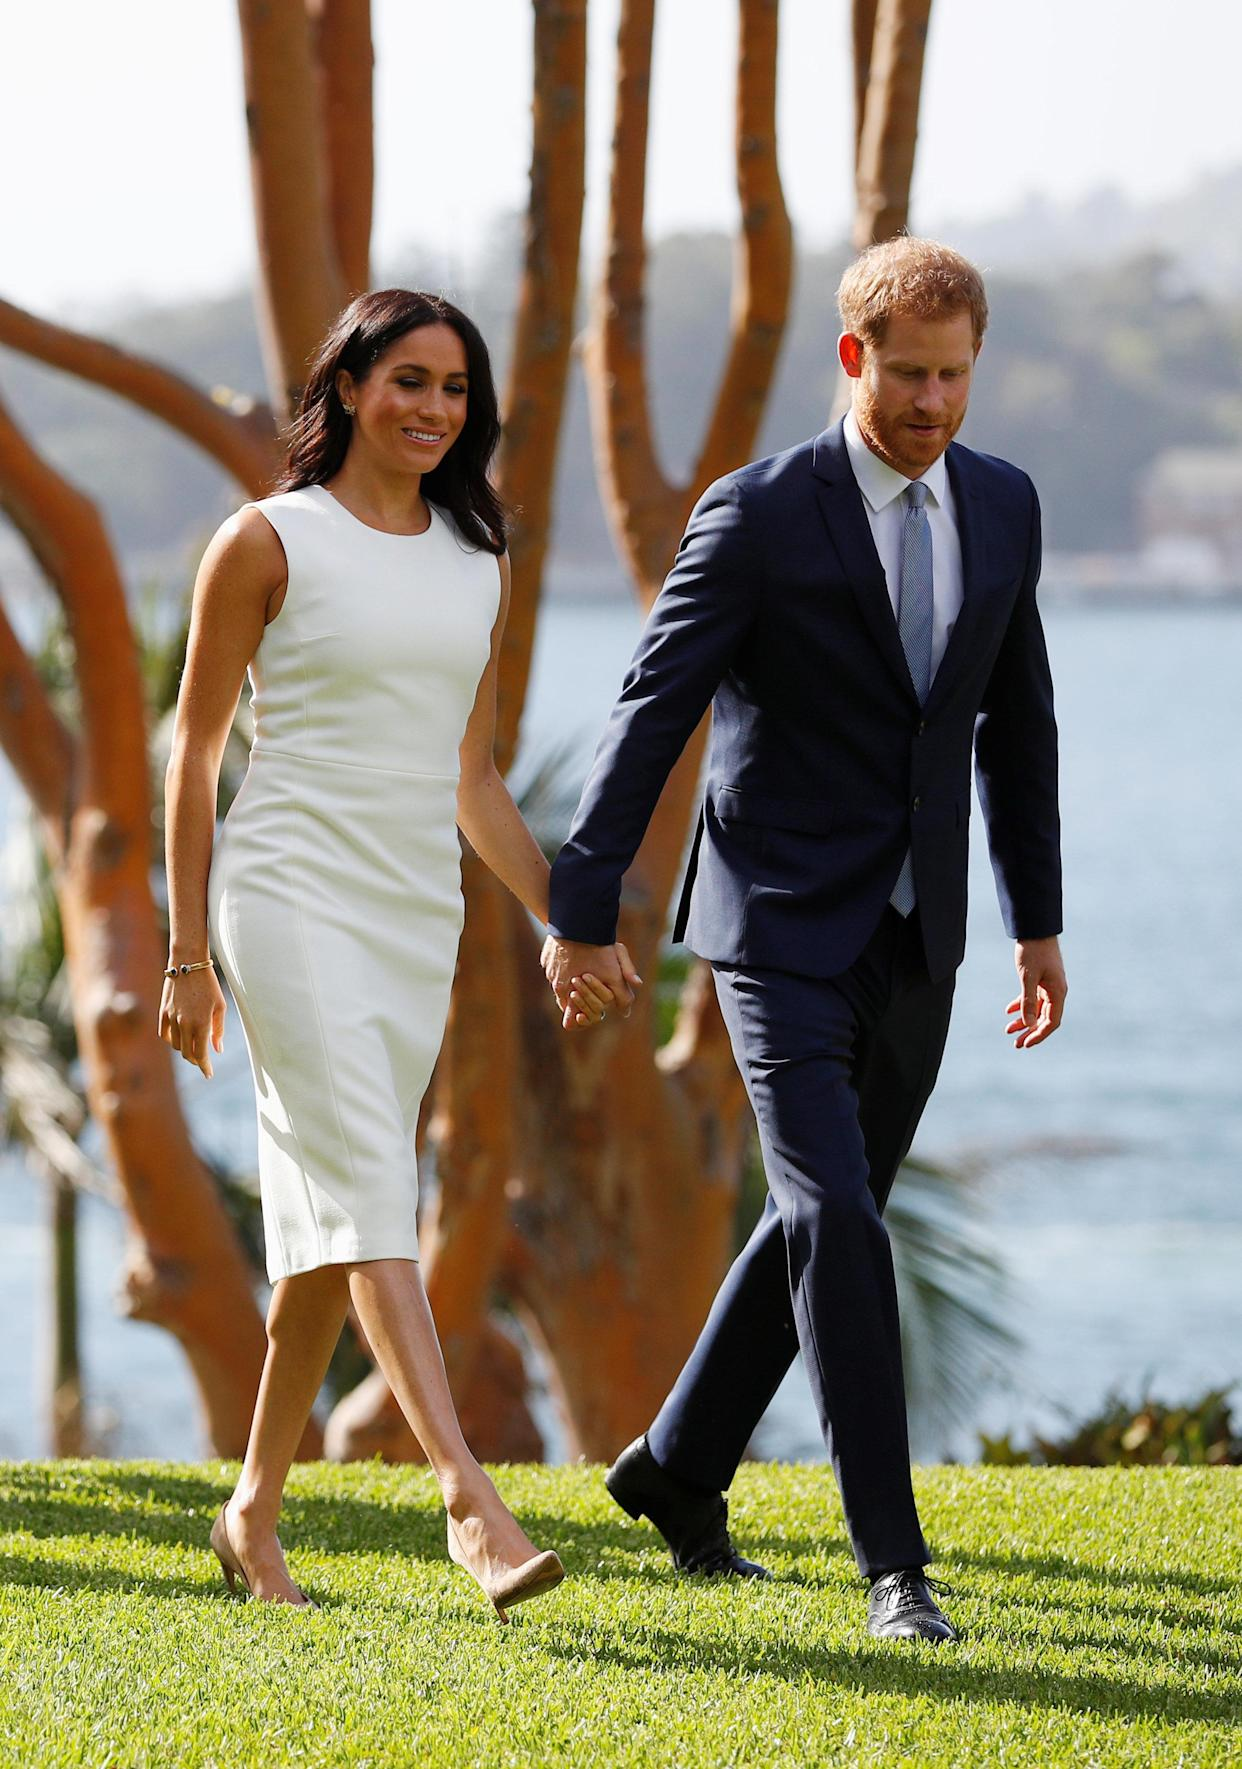 The love-up couple showed plenty of PDA. Photo: AAP